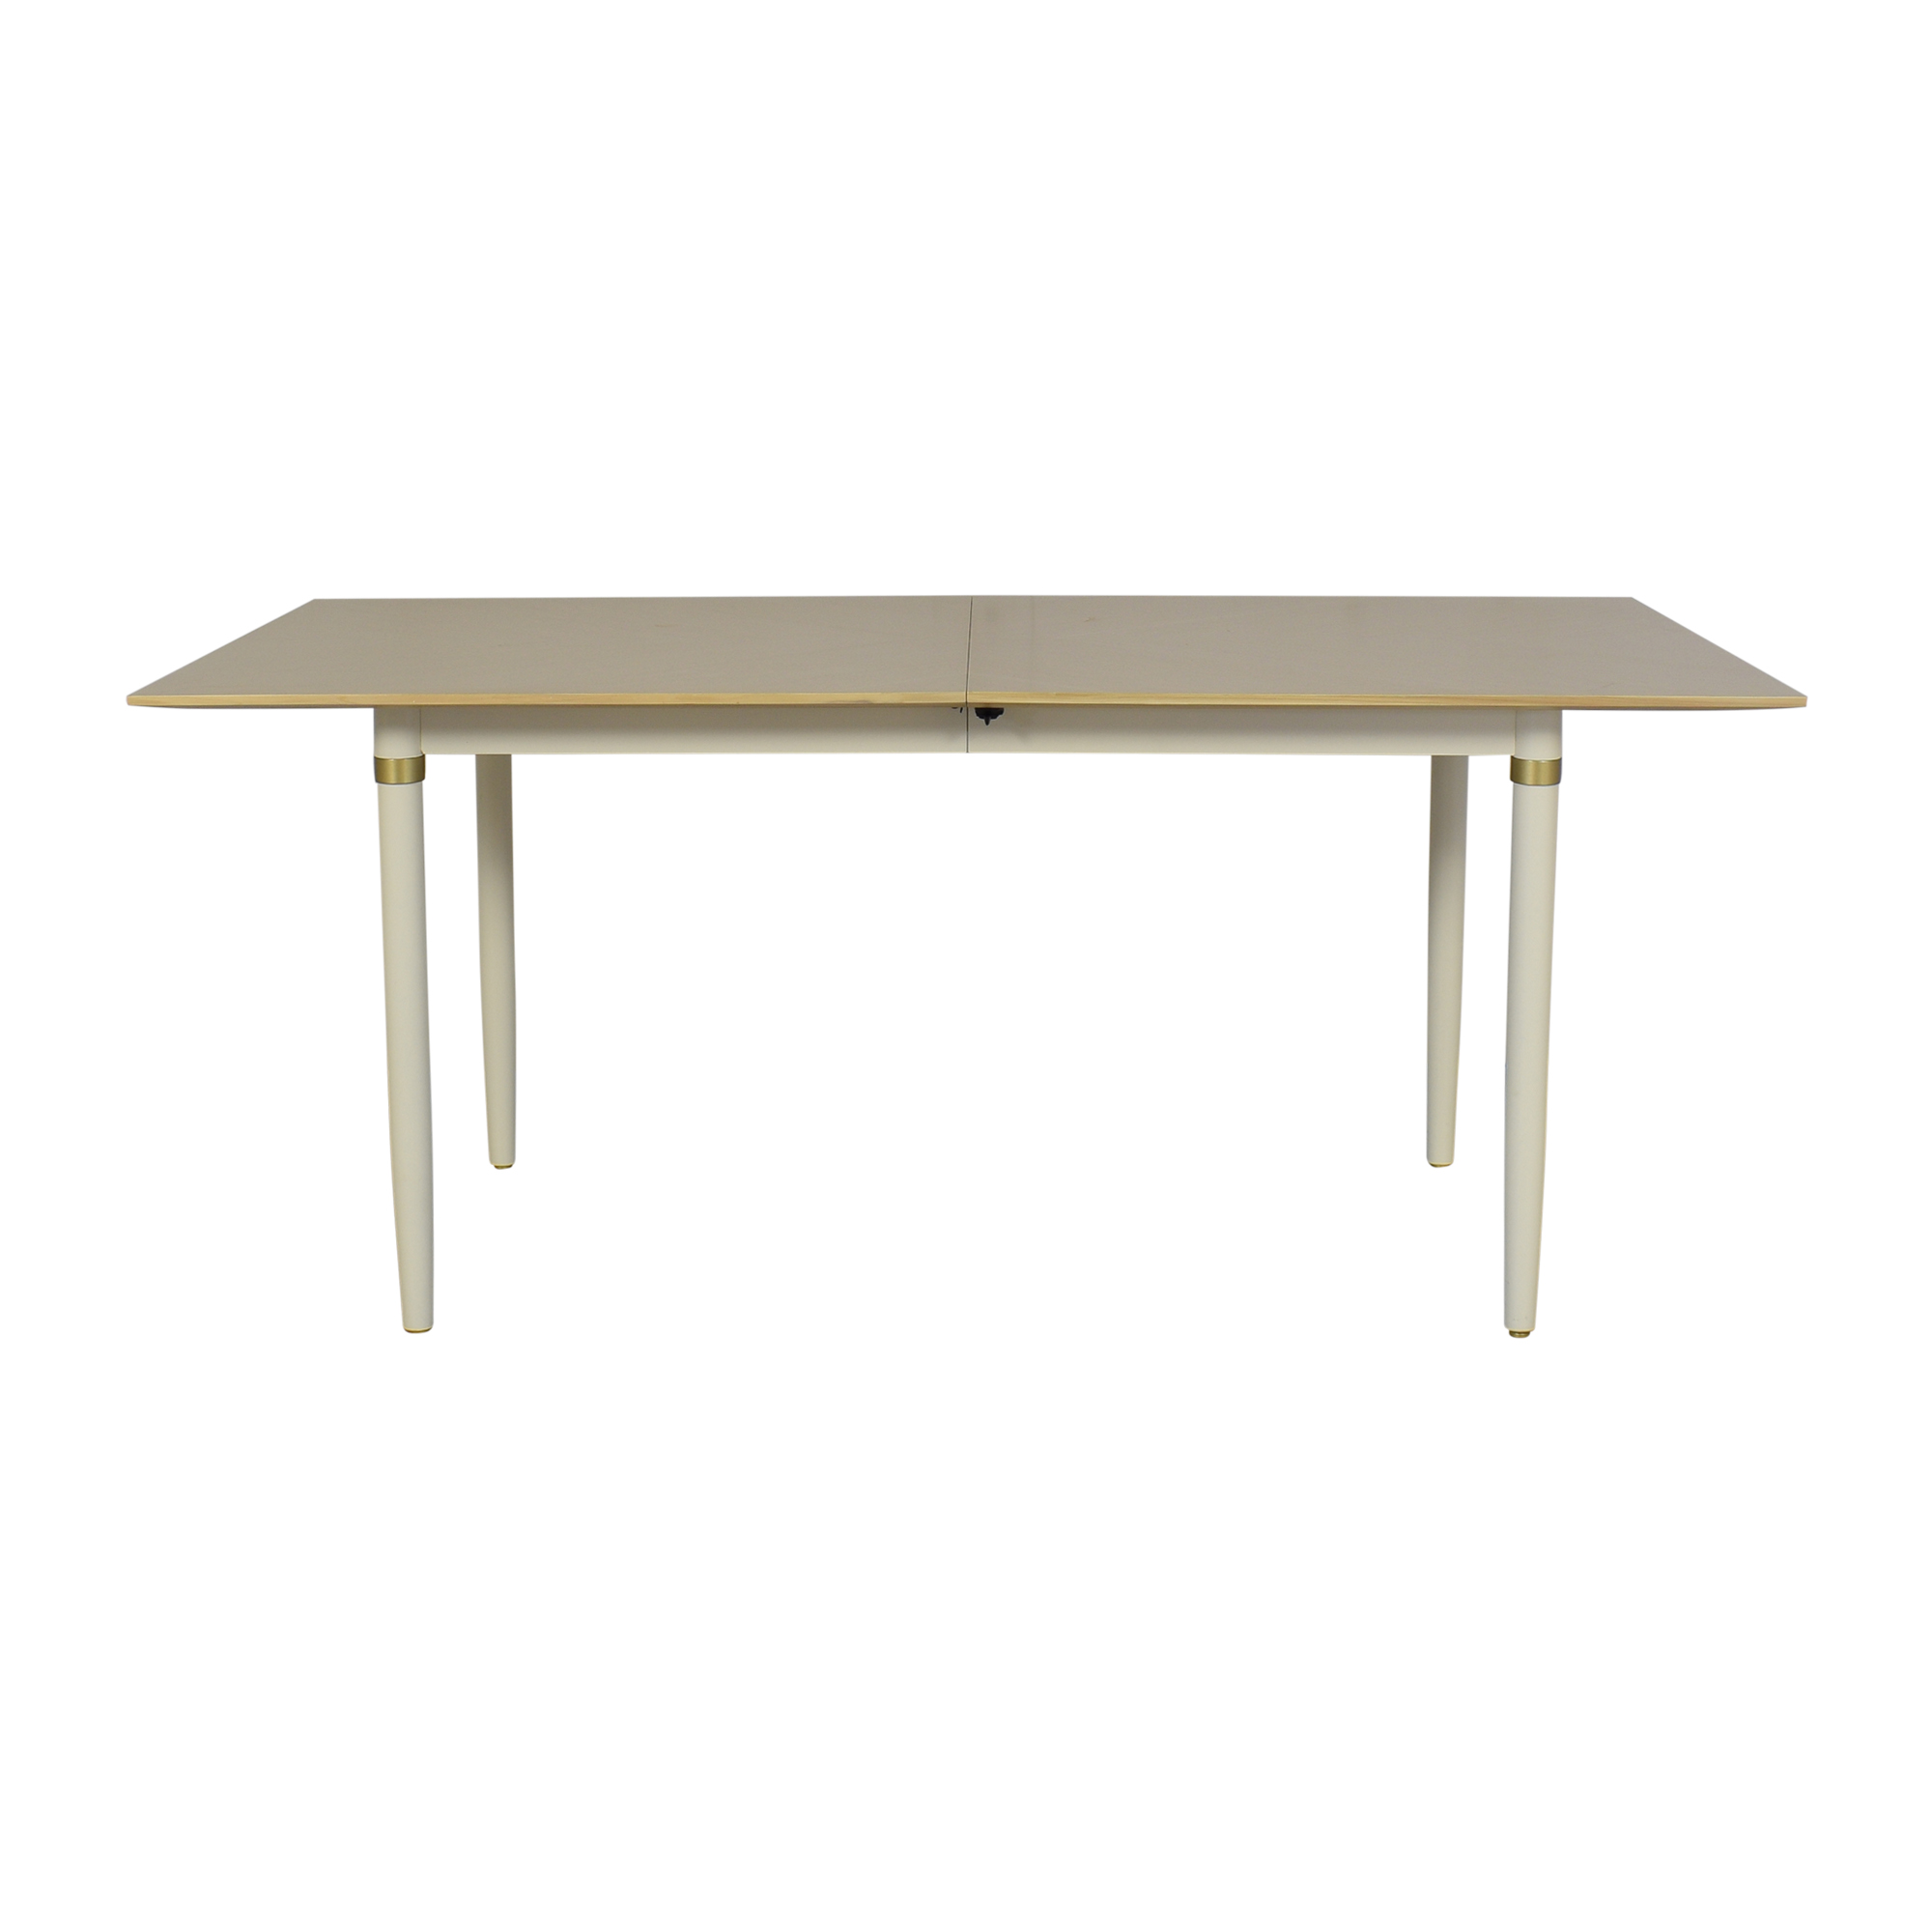 Anthropologie Anthropologie Expandable Dining Table price